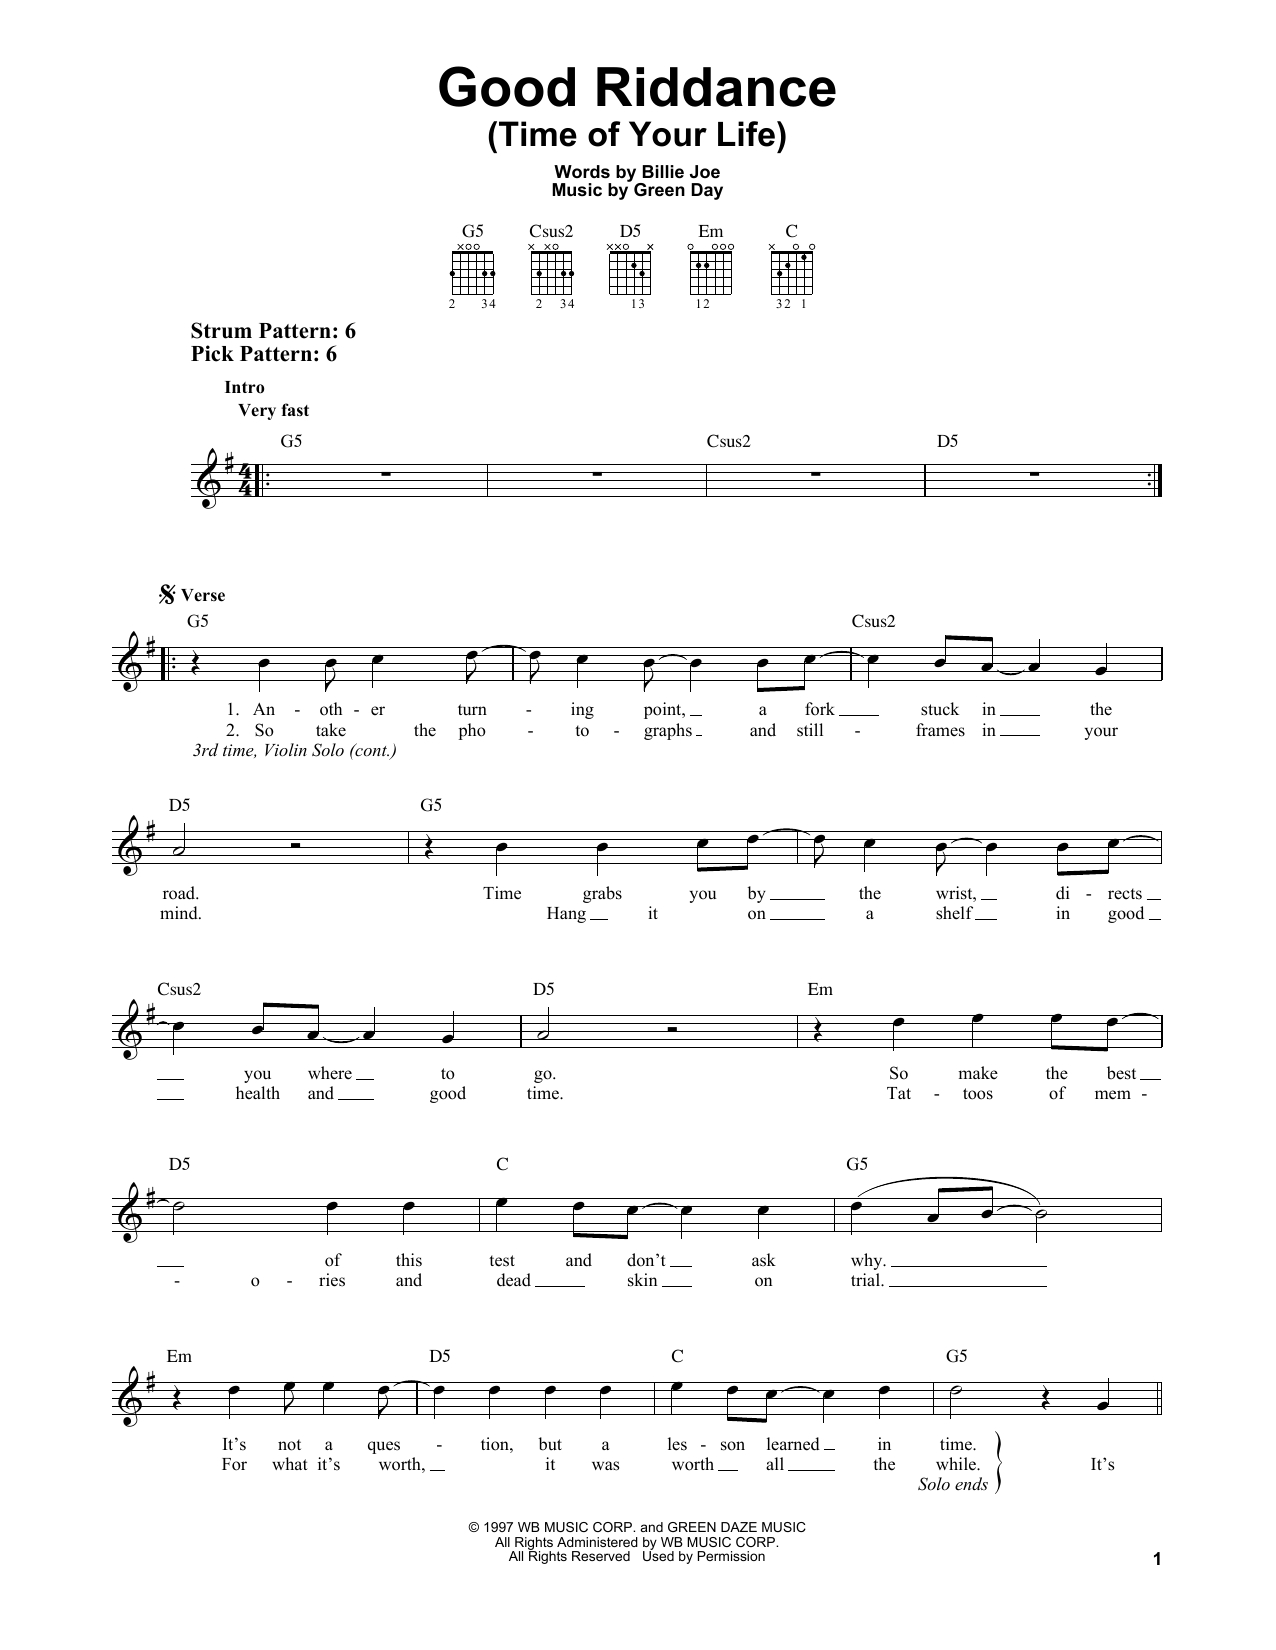 Good Riddance Chords Green Day Good Riddance Time Of Your Life Sheet Music Notes Chords